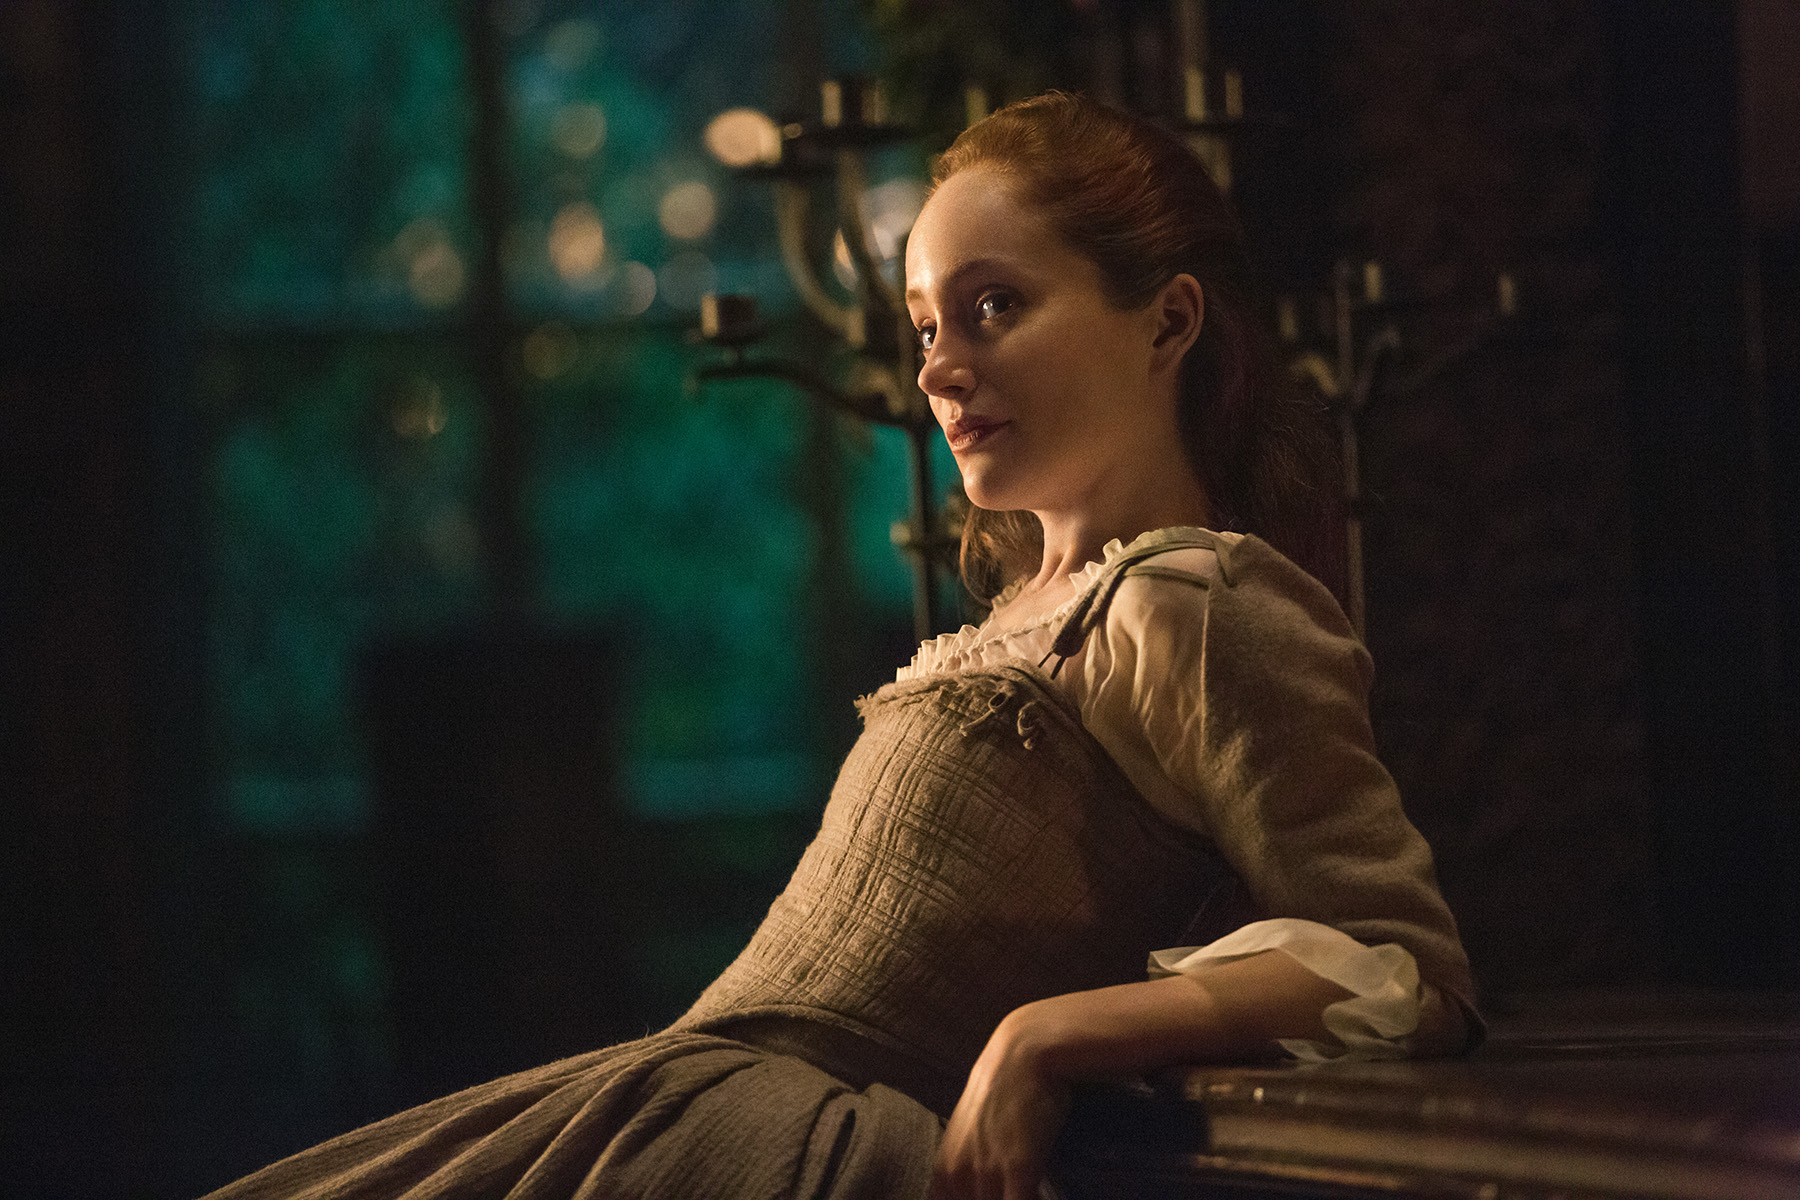 image Caitriona balfe and lotte verbeek nude outlander s01e10